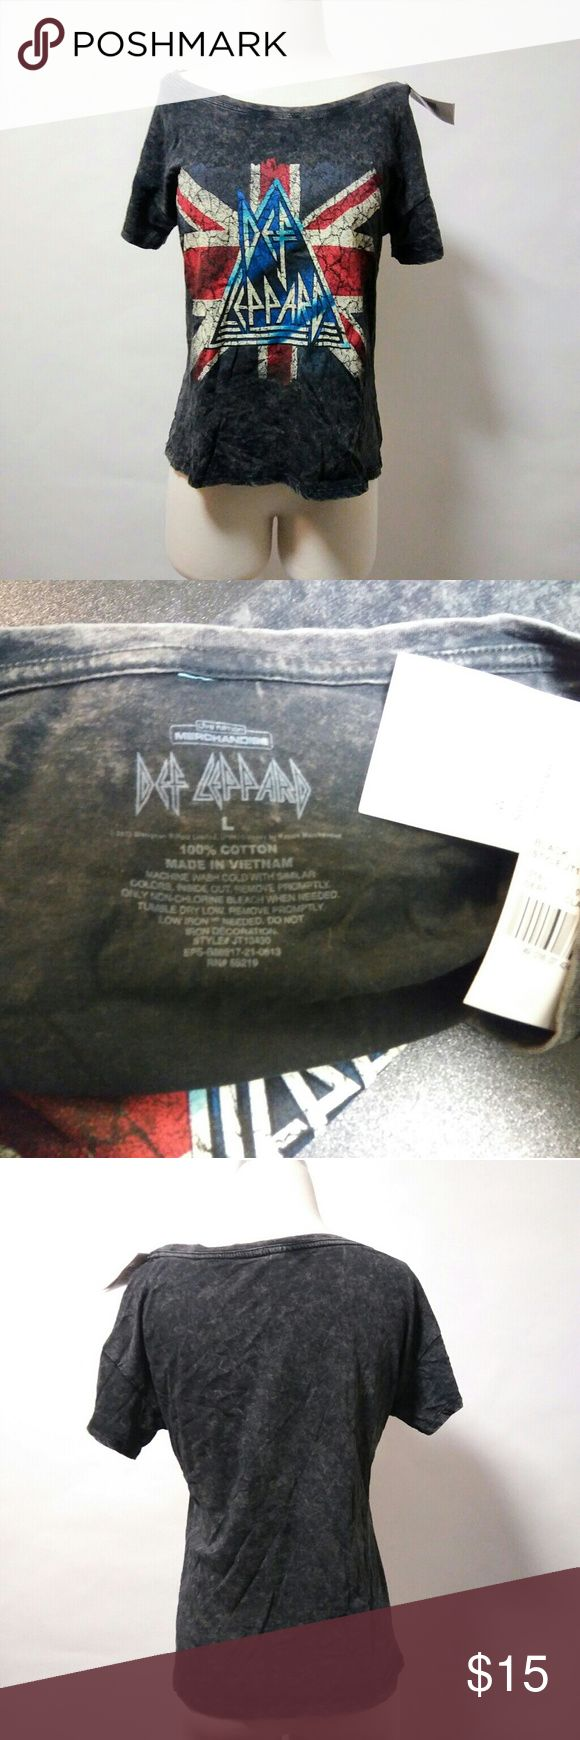 Vintage 80's style DEF LEPPARD t-shirt NWT New with tags  Chest-40 inches Length-21 inches Tops Tees - Short Sleeve